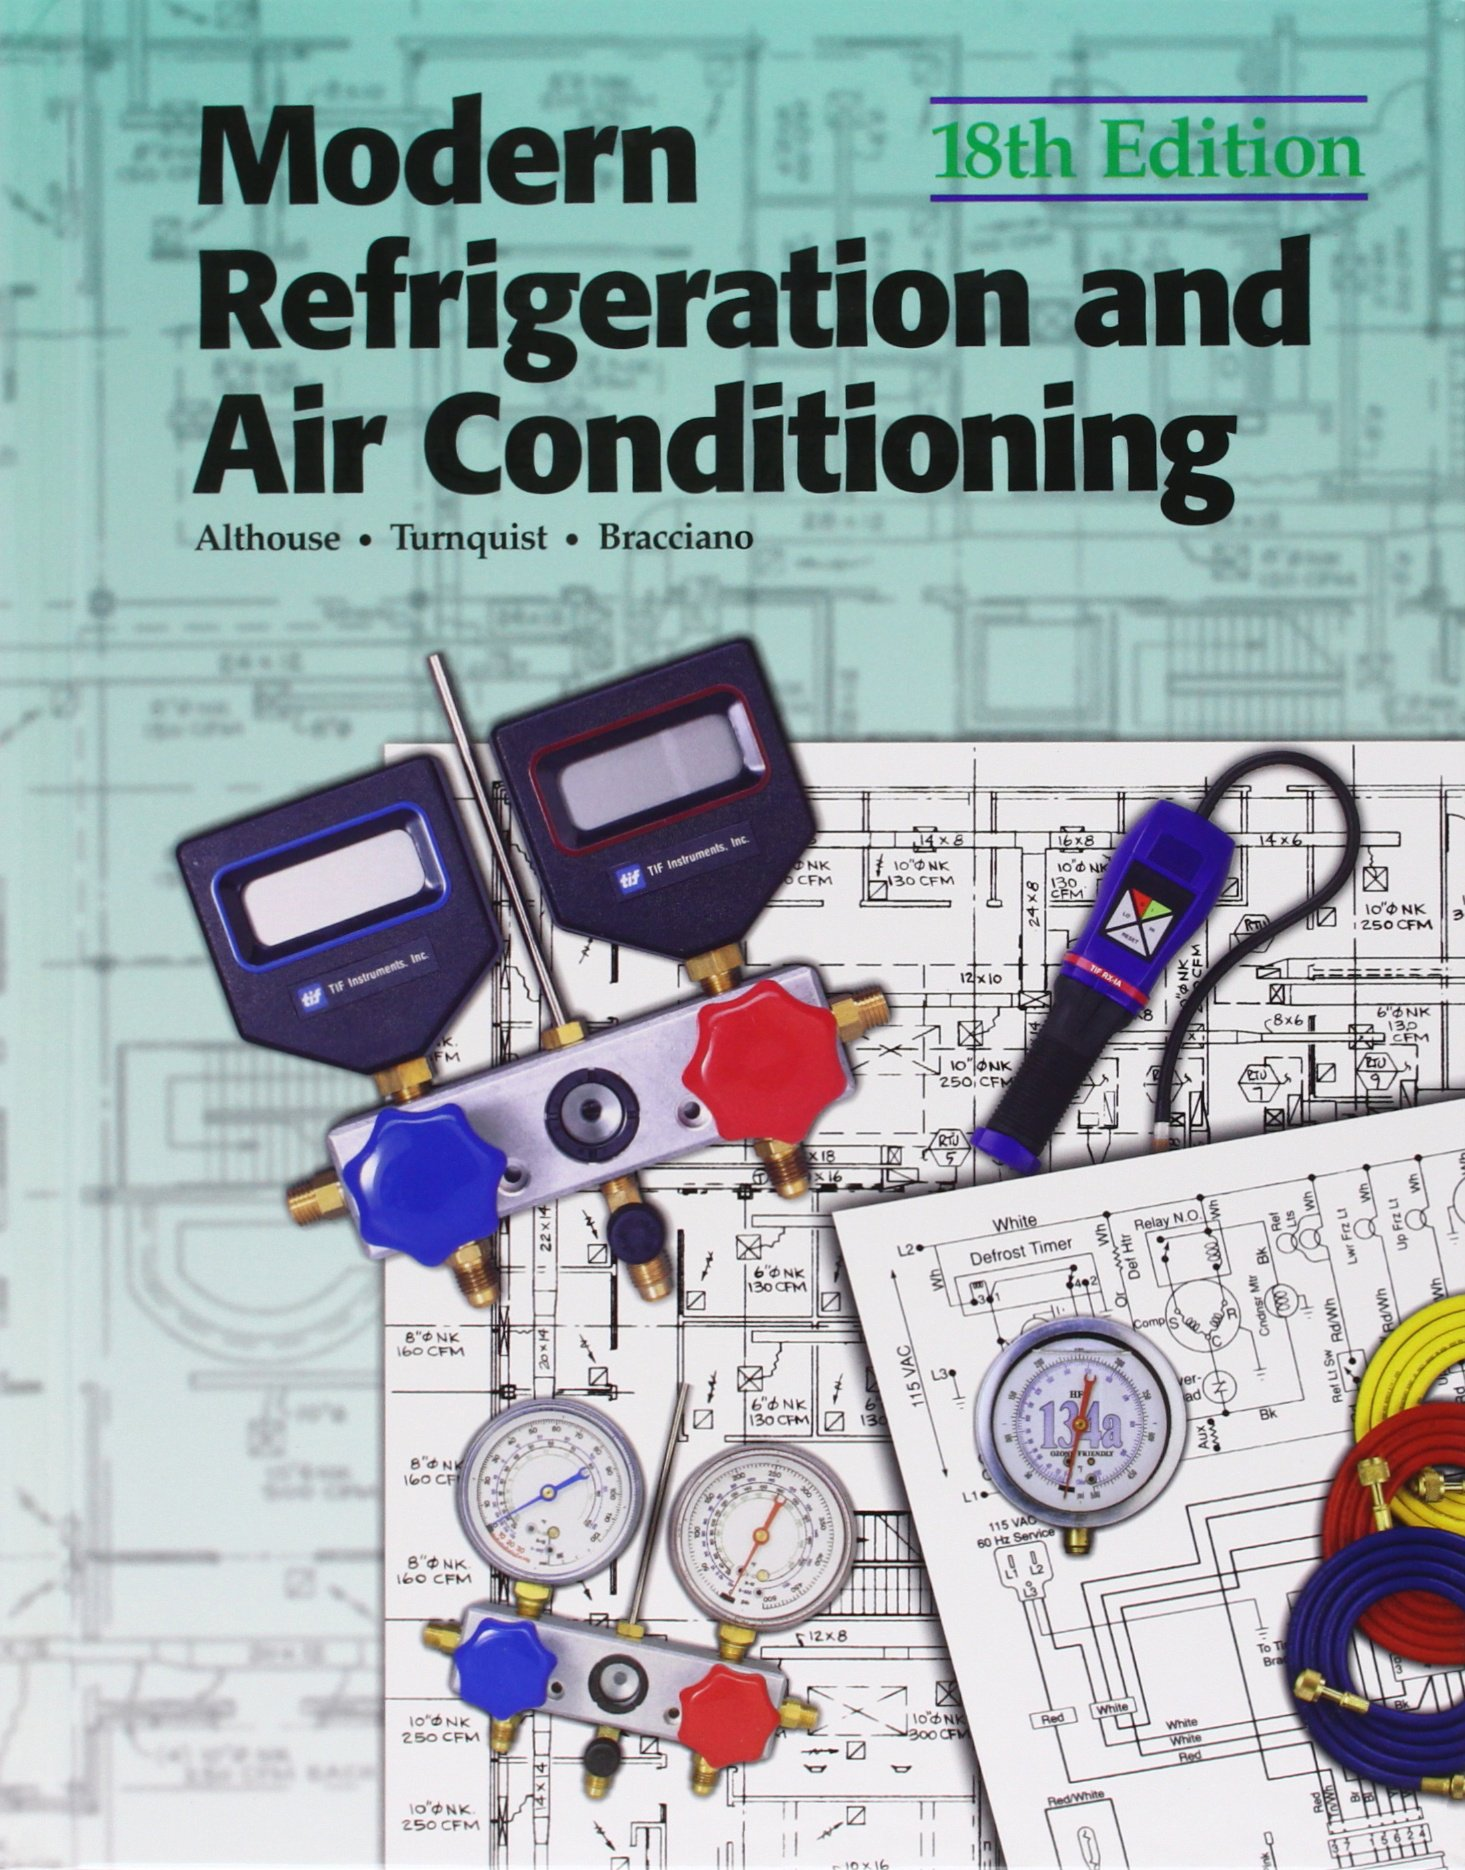 Modern refrigeration and air conditioning andrew d althouse modern refrigeration and air conditioning andrew d althouse 9781590702802 books amazon fandeluxe Images